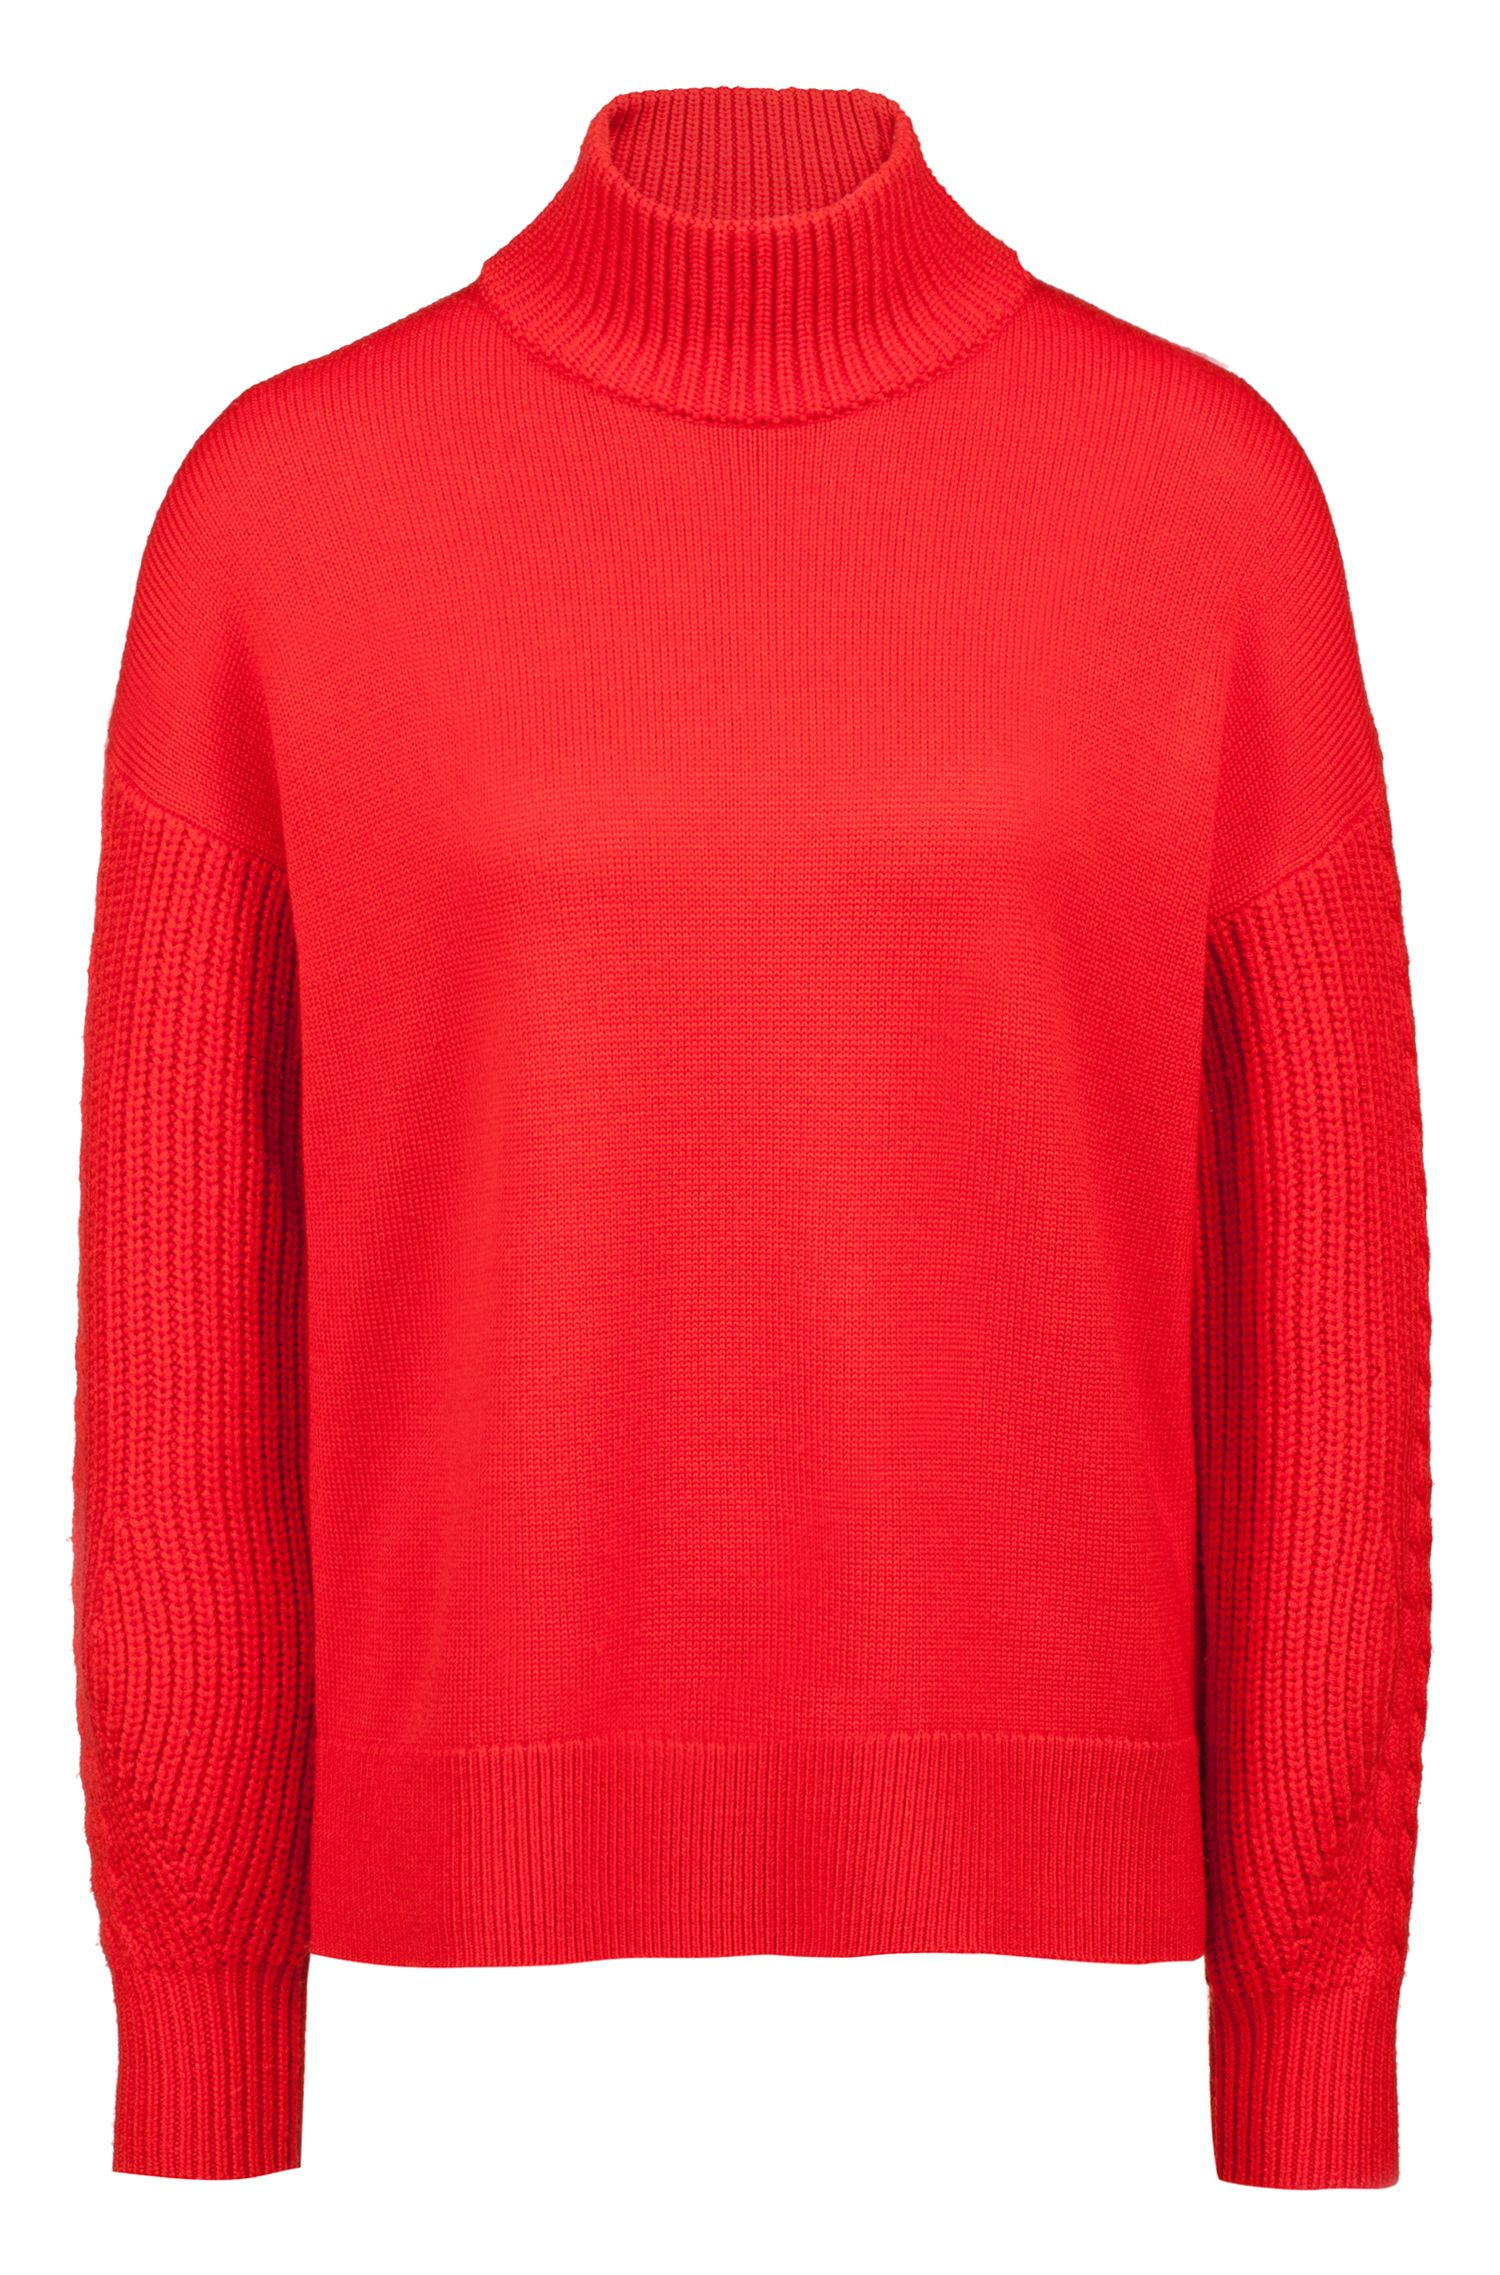 Turtleneck sweater in merino wool with cable-knit details, Red